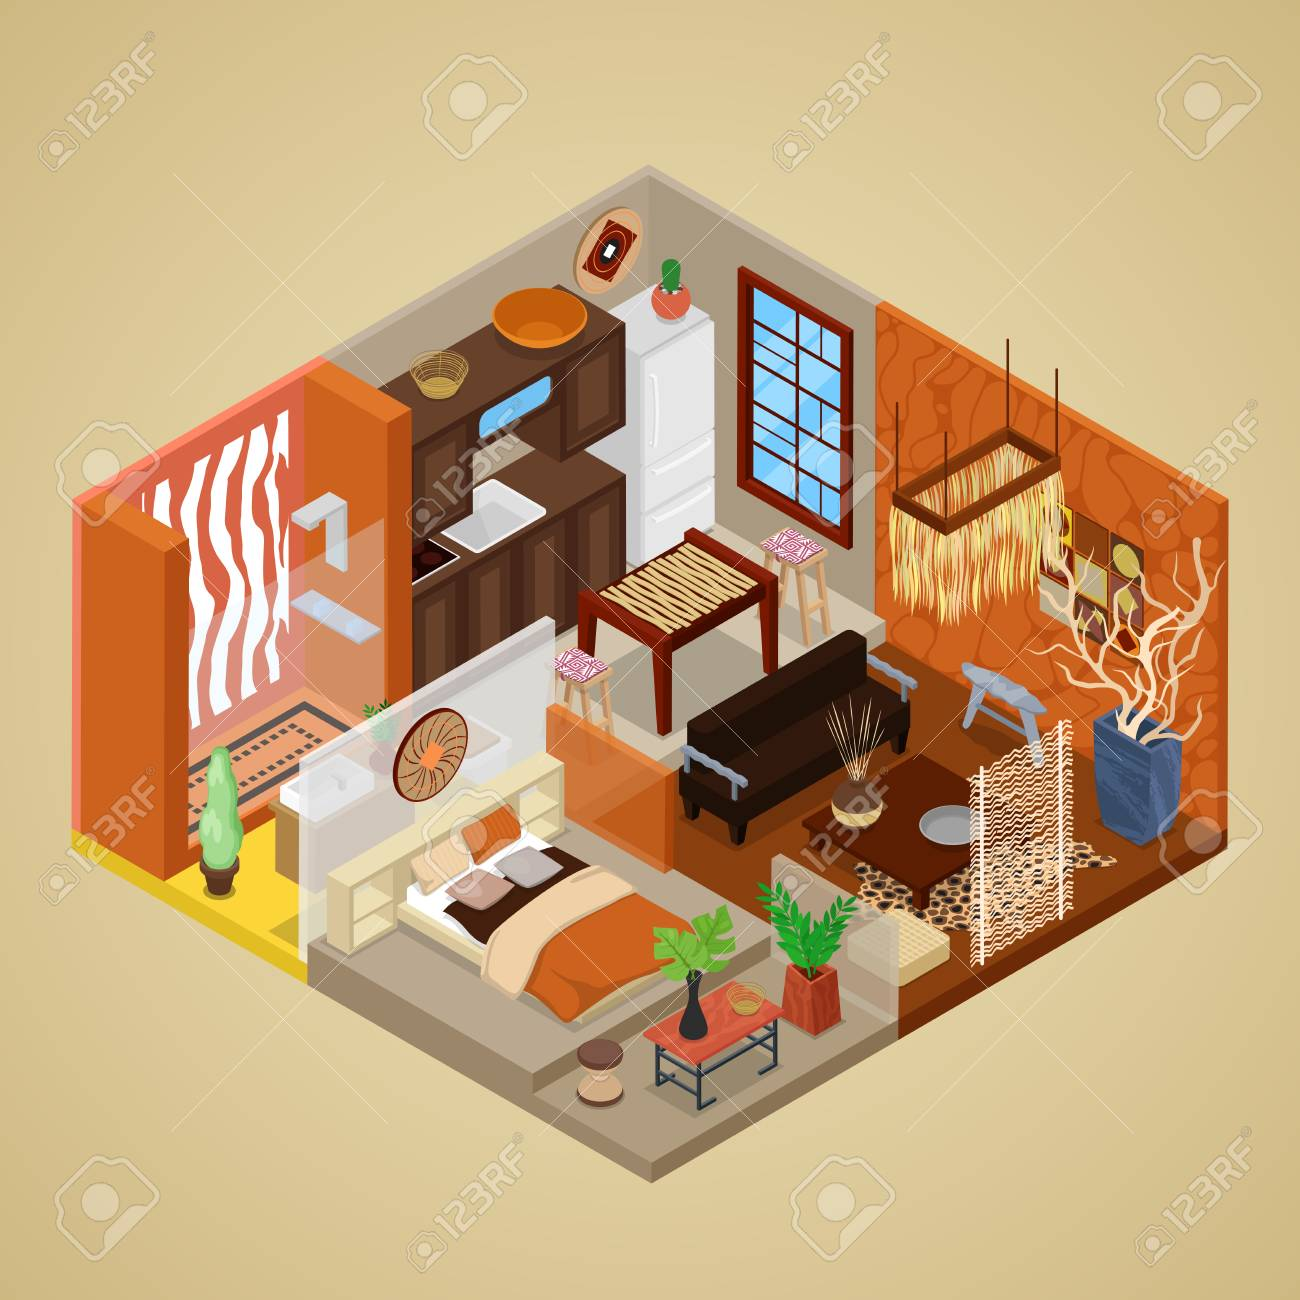 african style living room design interior ideas indian with and kitchen isometric vector flat 3d illustration stock